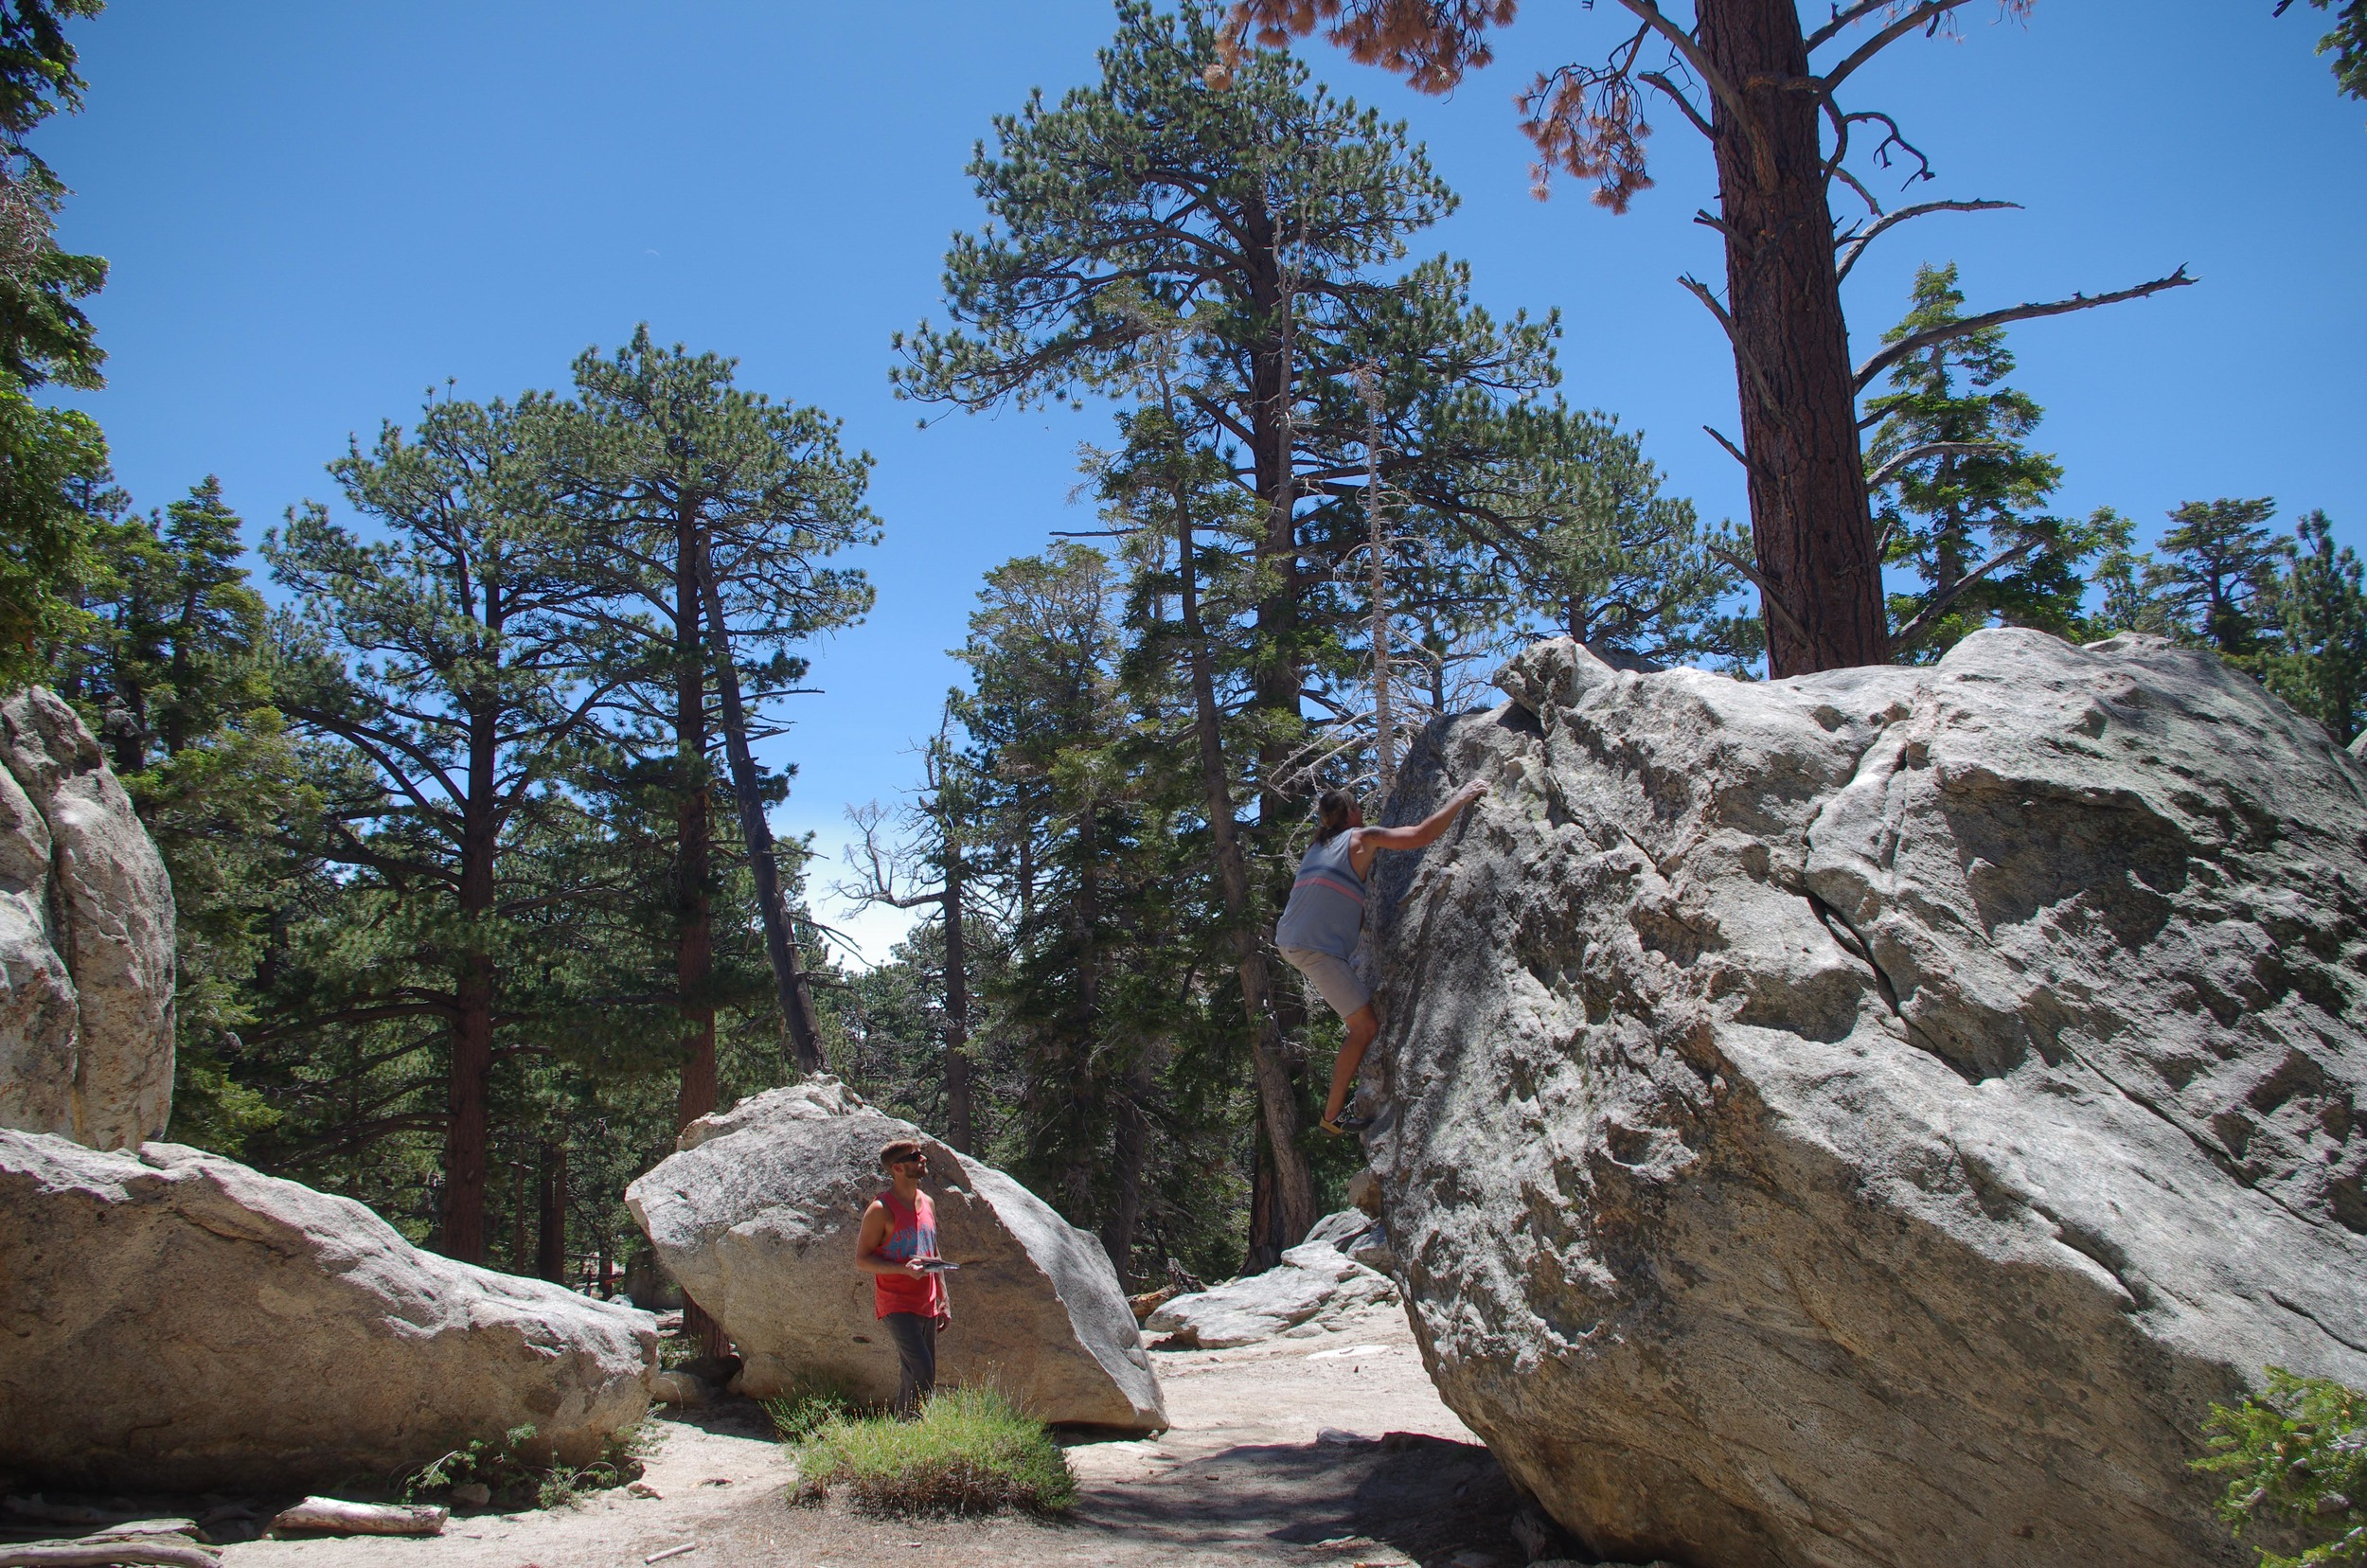 Glacier strewn boulders cover the mountain and there are hundreds of classic problems to spend your summers on with a seasons pass for the tram.  Mount San Jacinto State Park, California